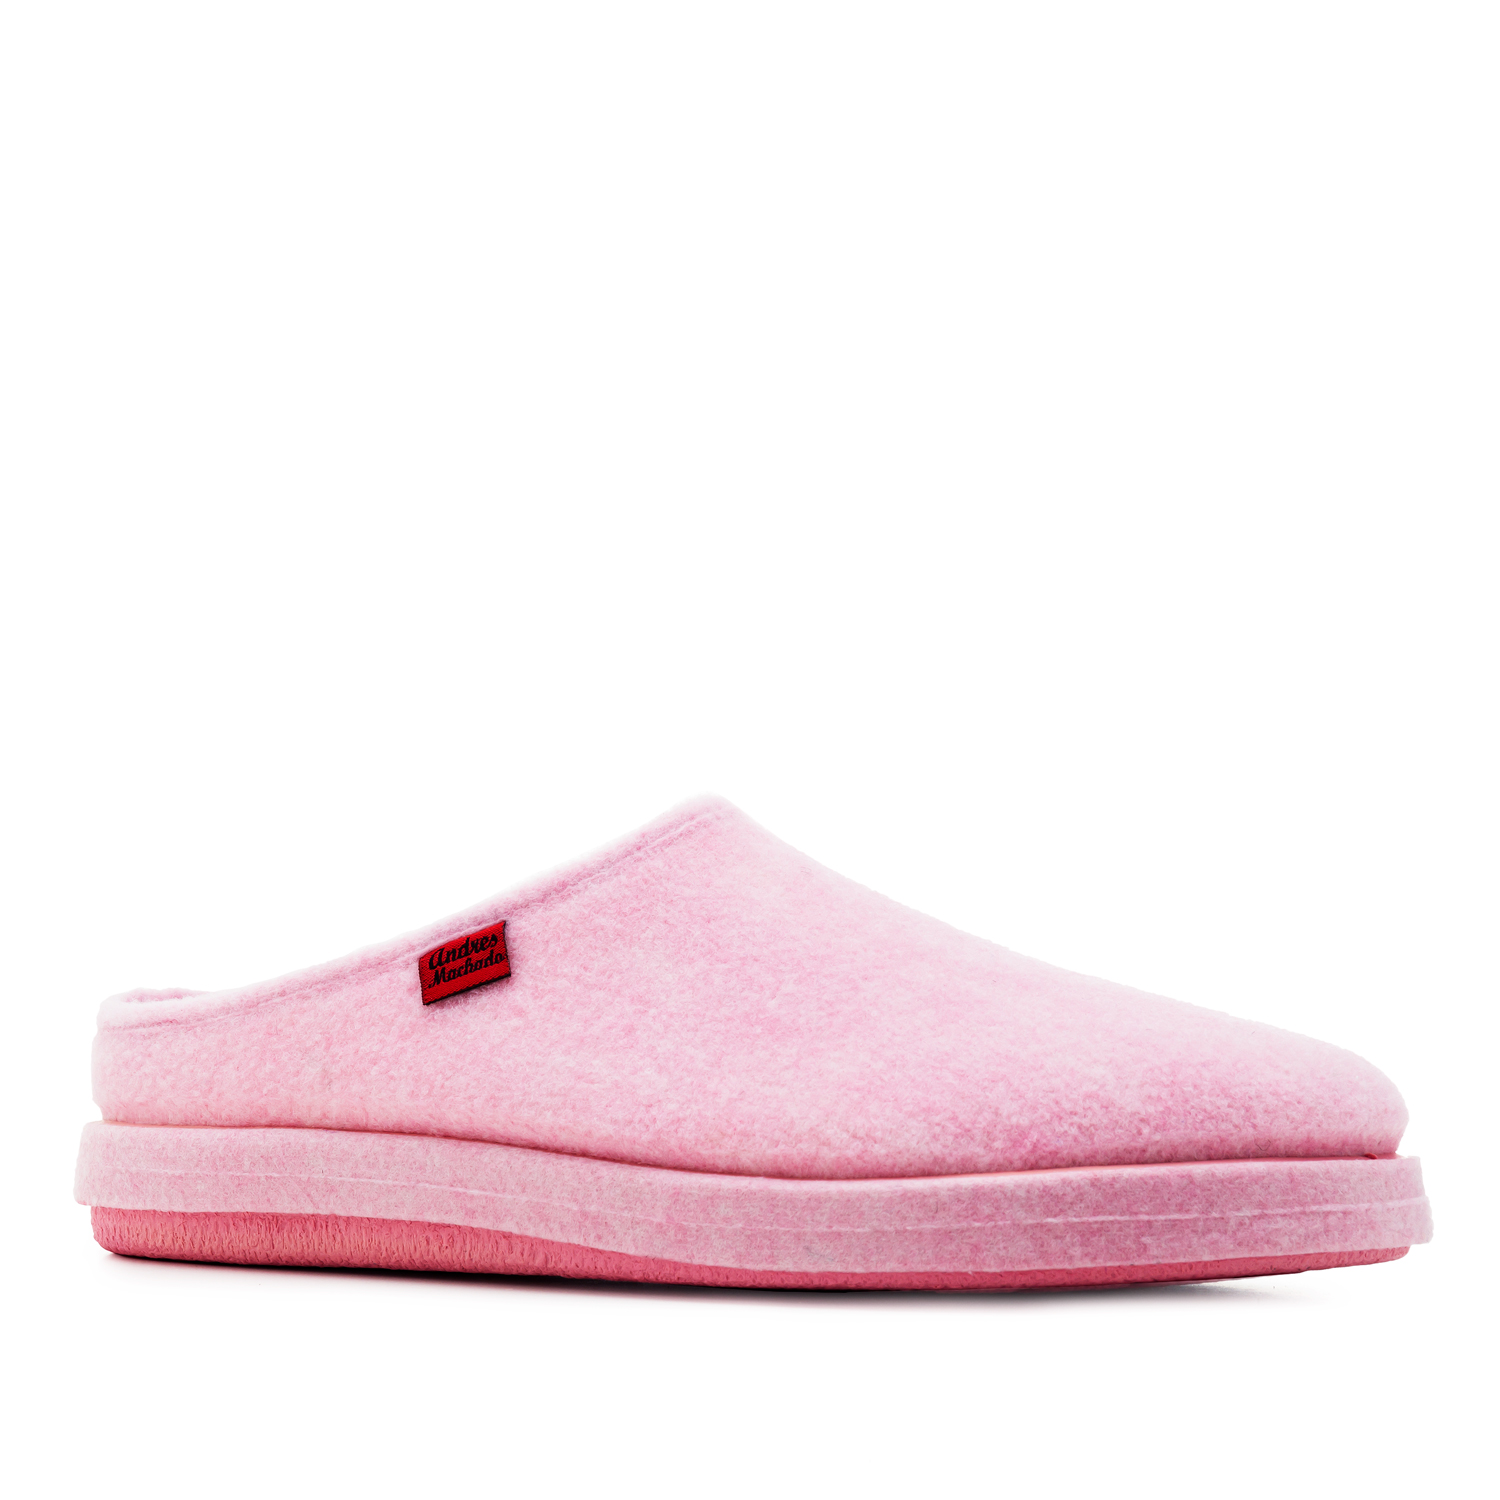 Very comfortable Pink Felt Slippers with footbed